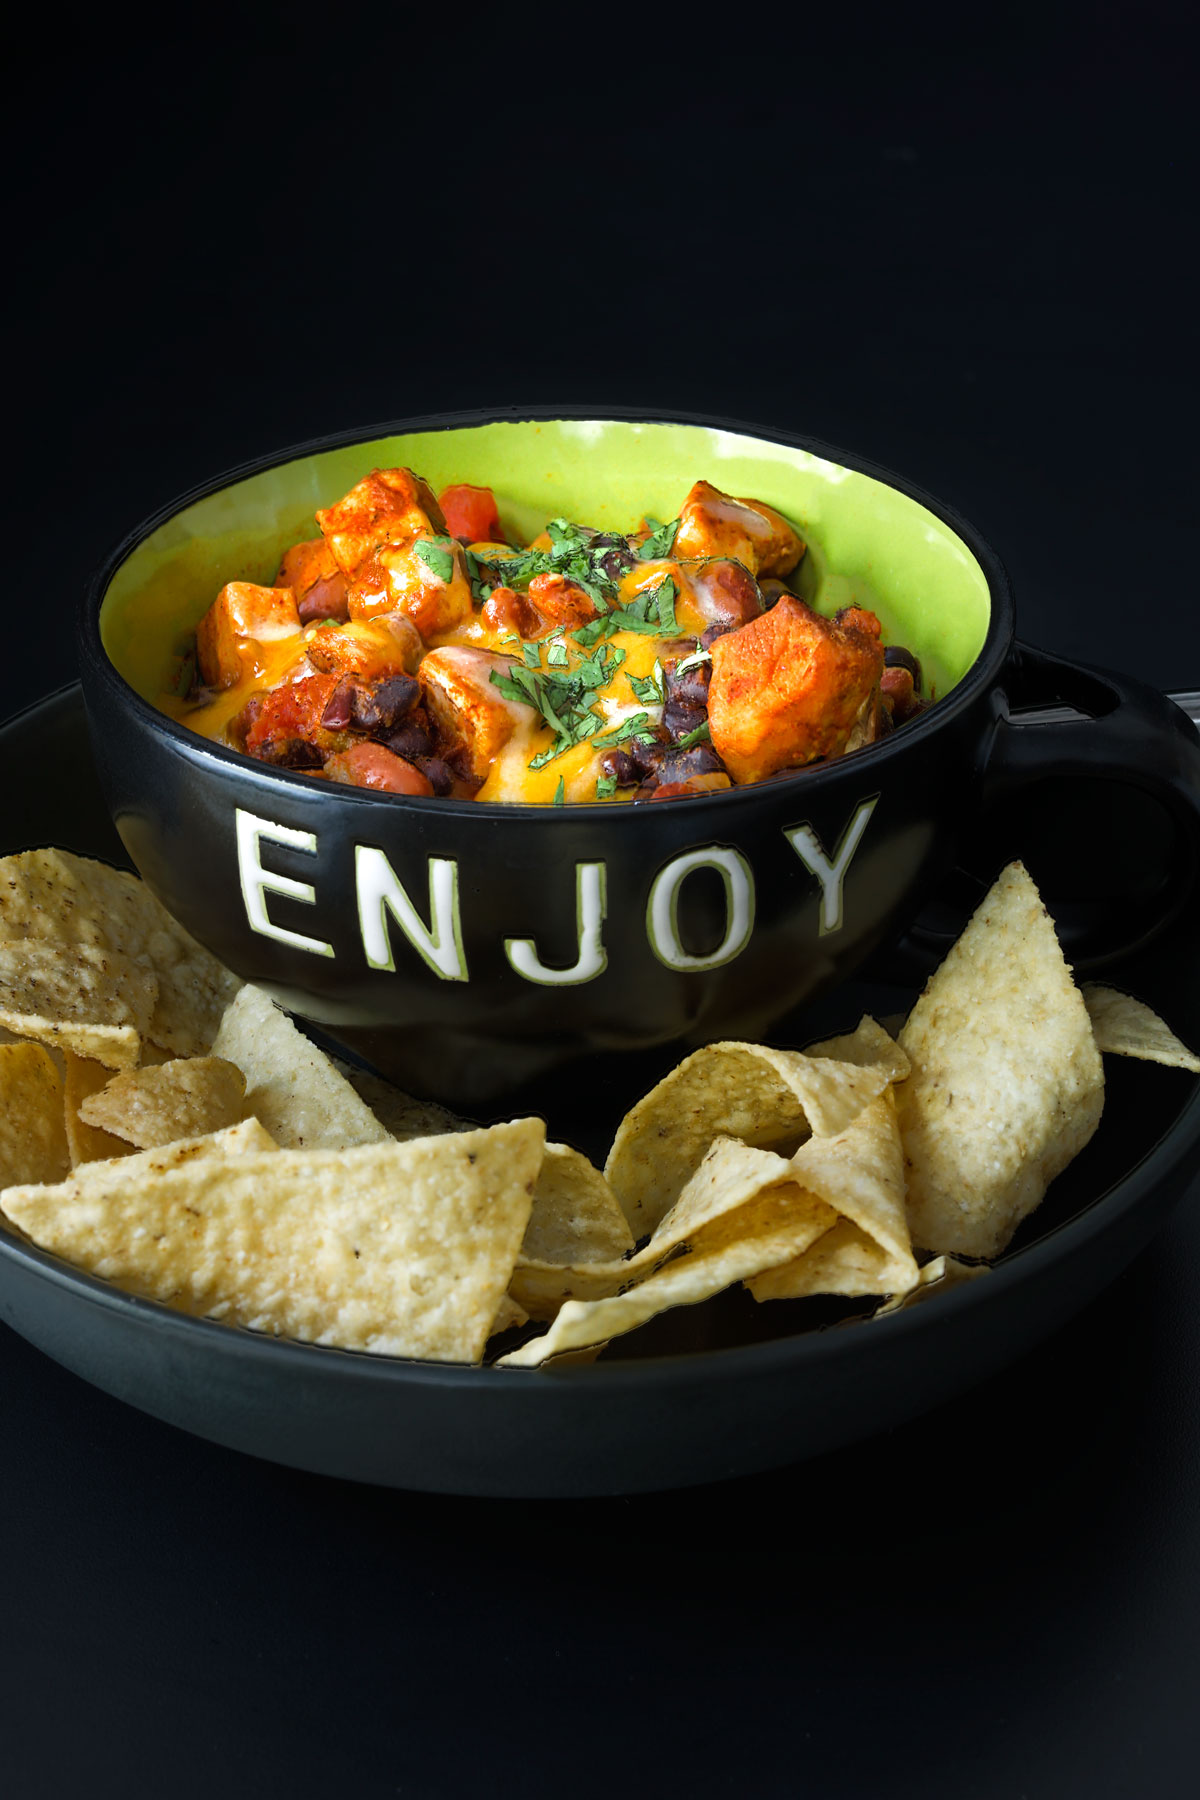 black bowl of chili marked ENJOY on plate of chips on black table top.